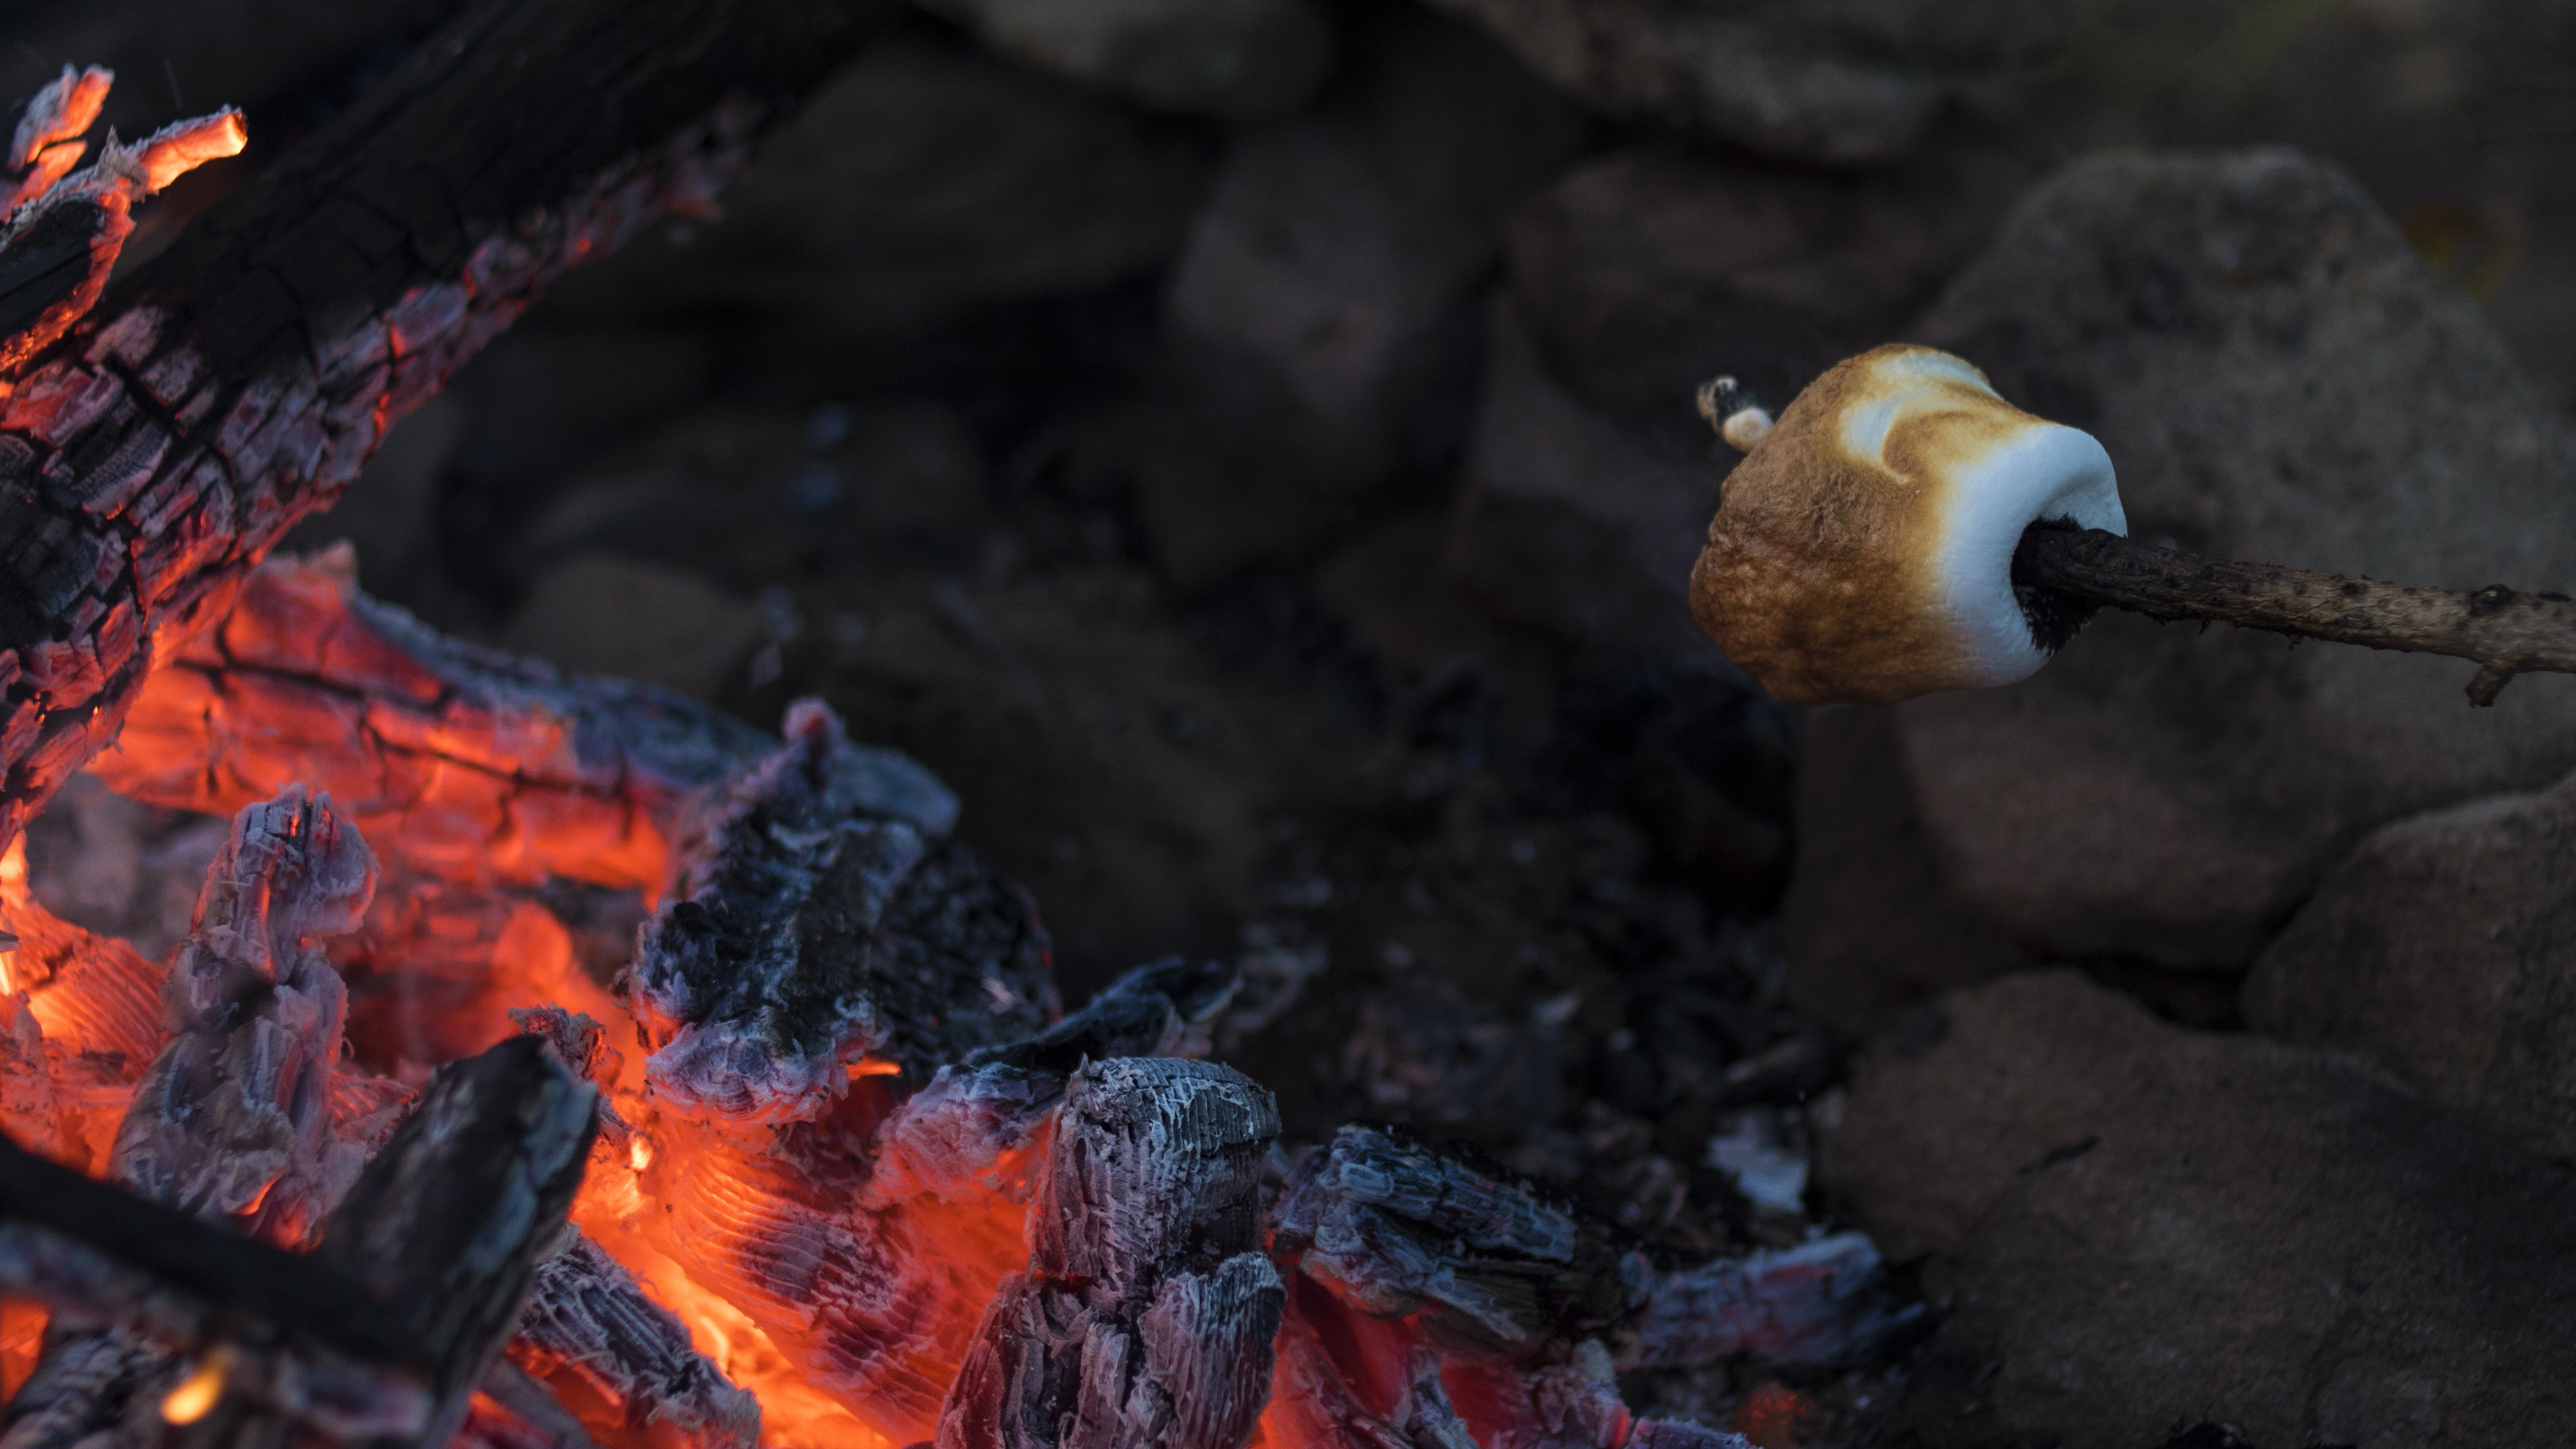 grilled marshmallow on fire pit